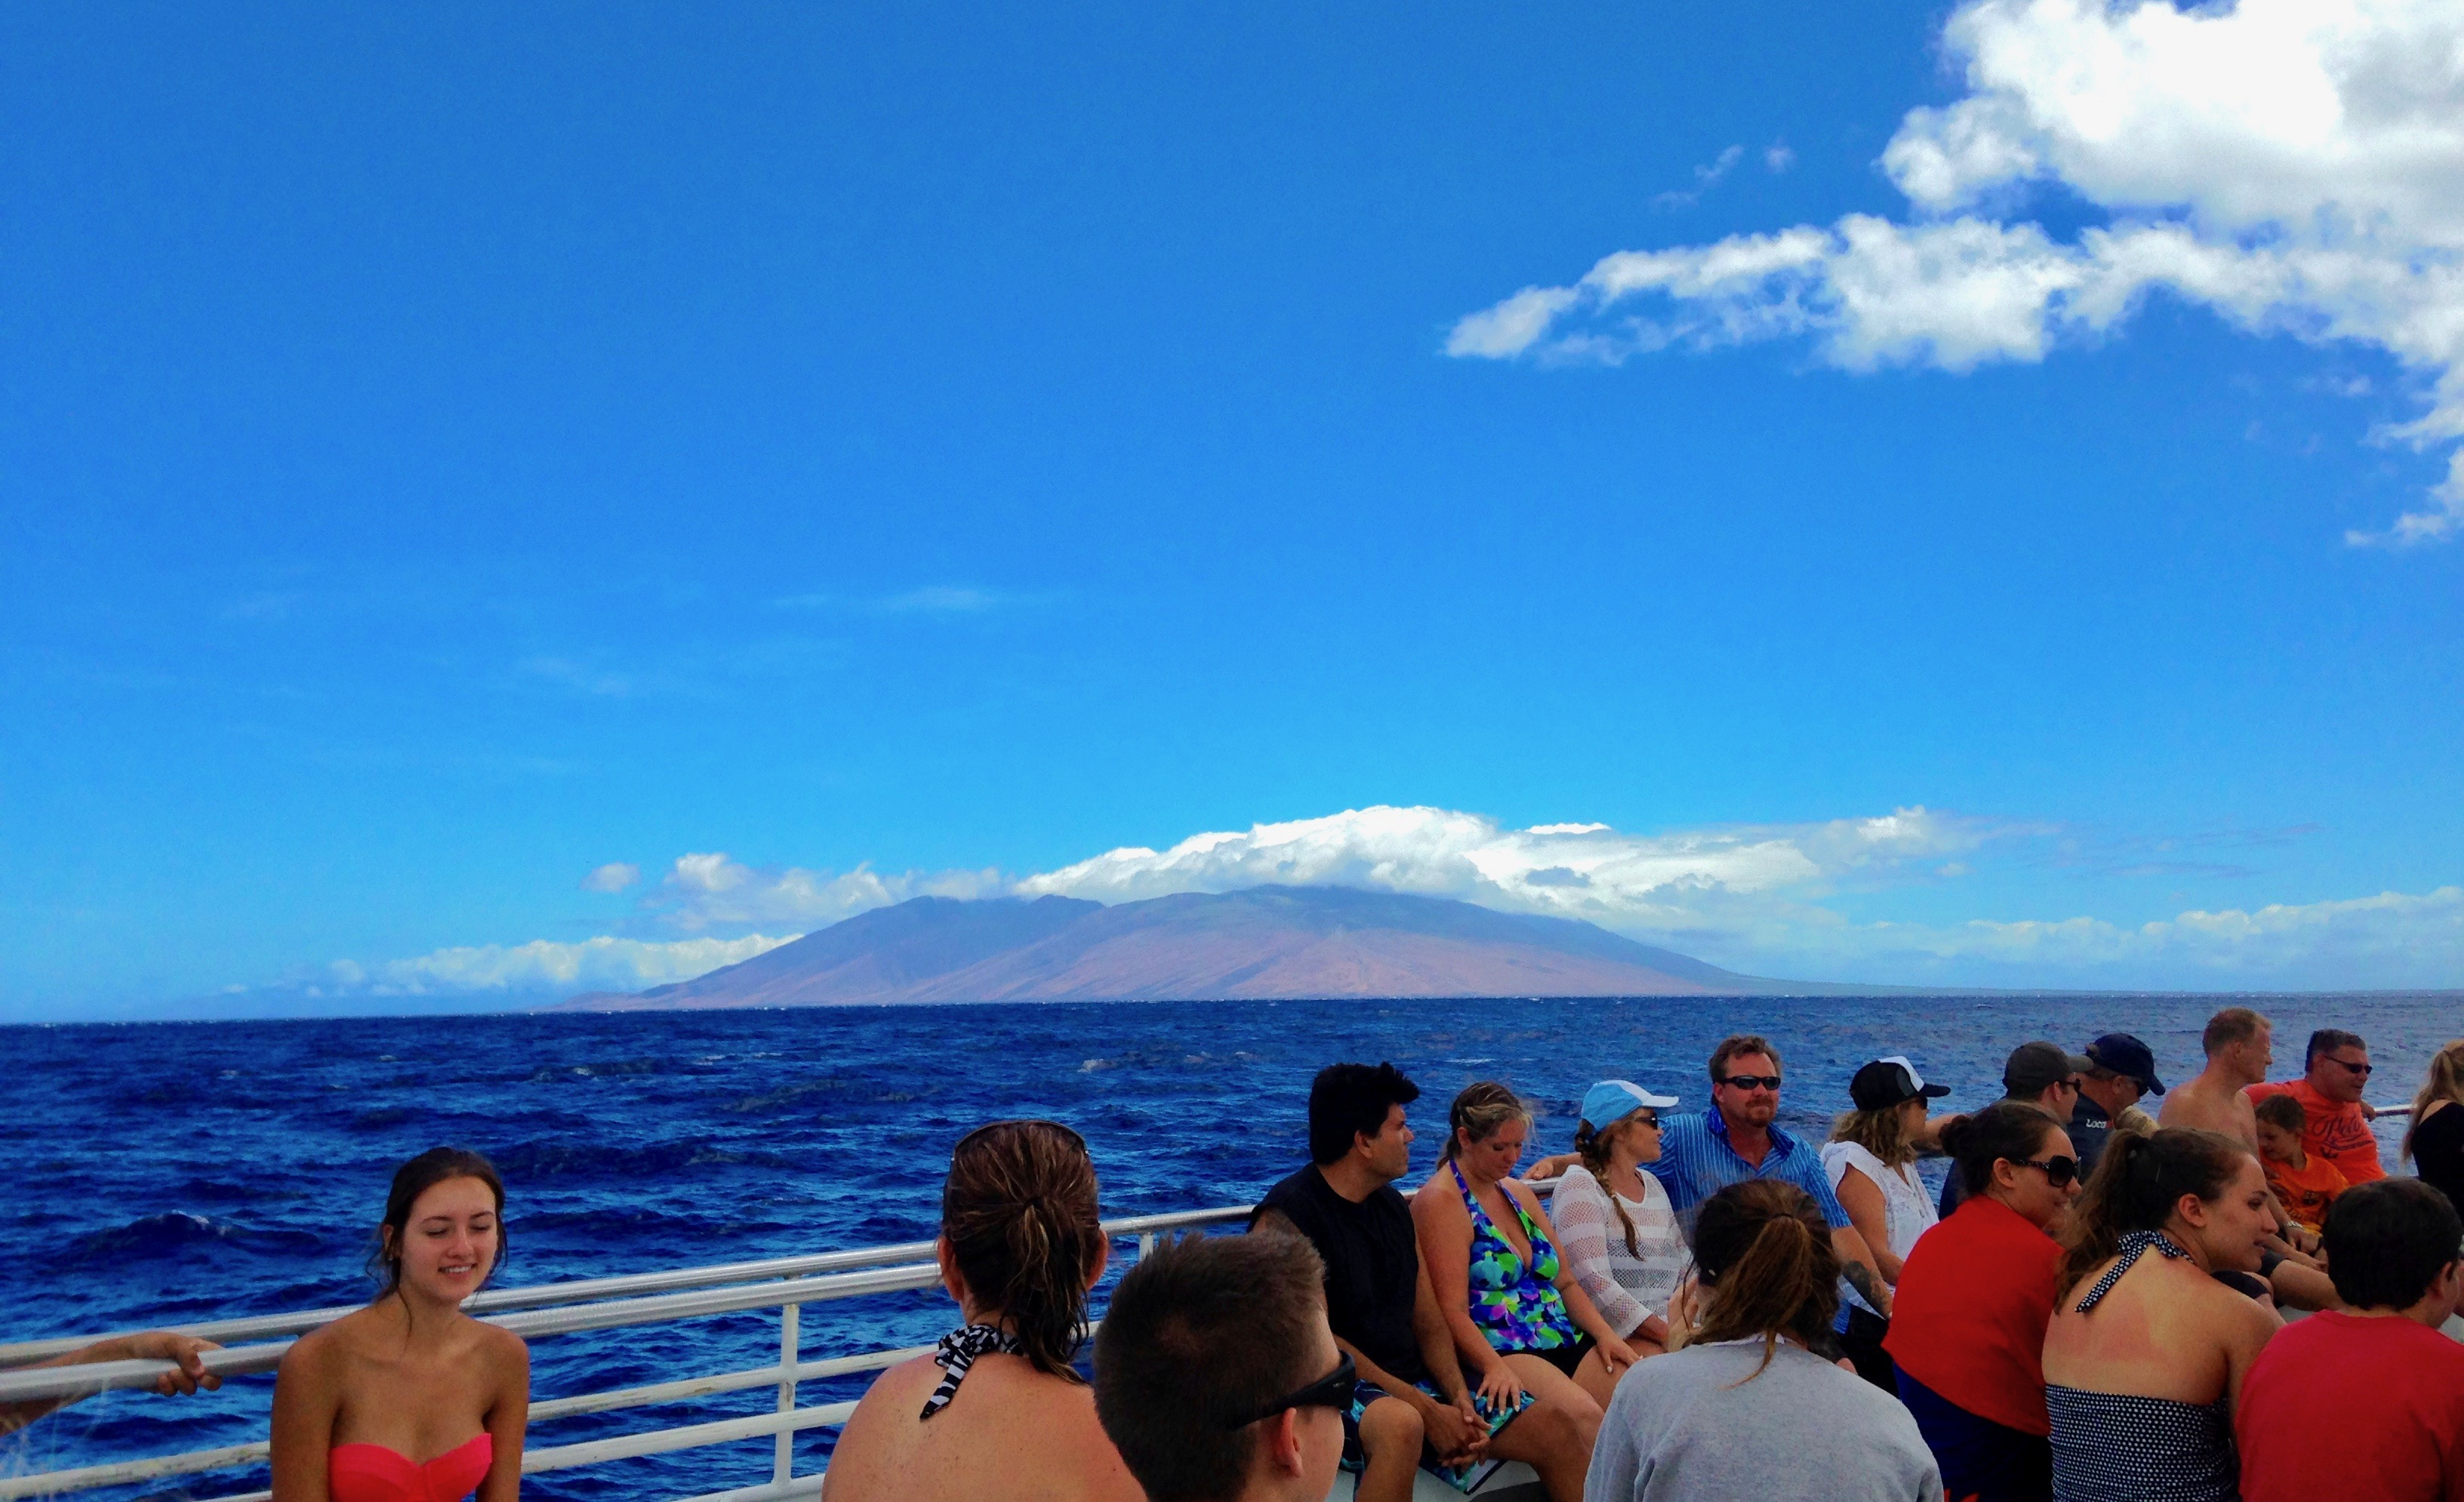 Maui Hawaii from boat ride snorkel trip to Molokini Crater